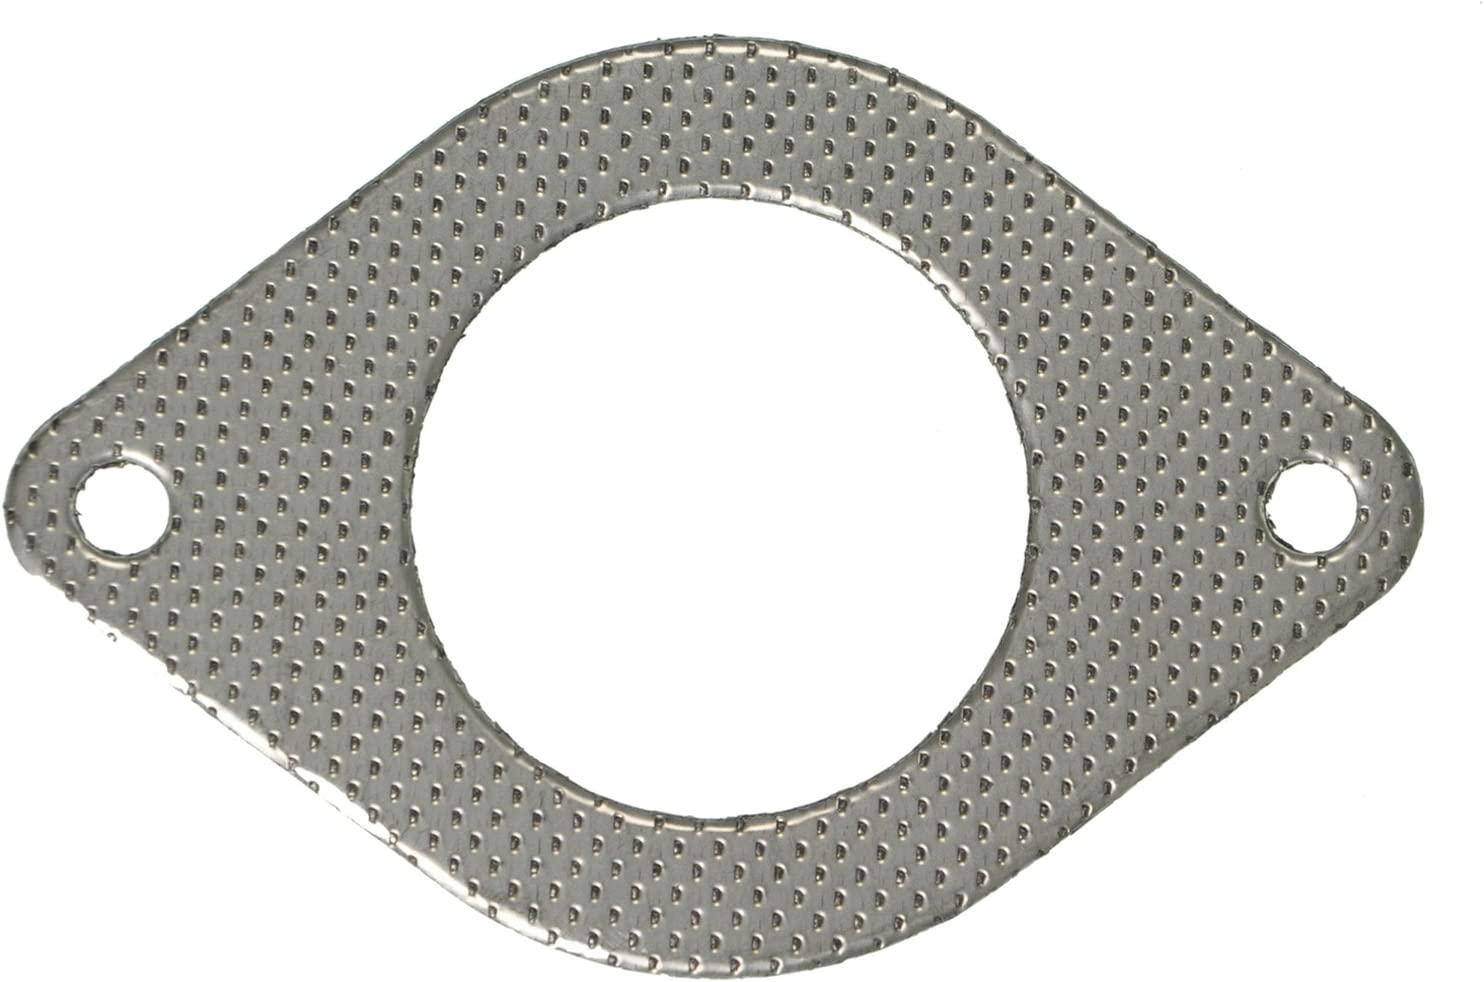 Exhaust Pipe Flange Gasket Front Fel-Pro 60796